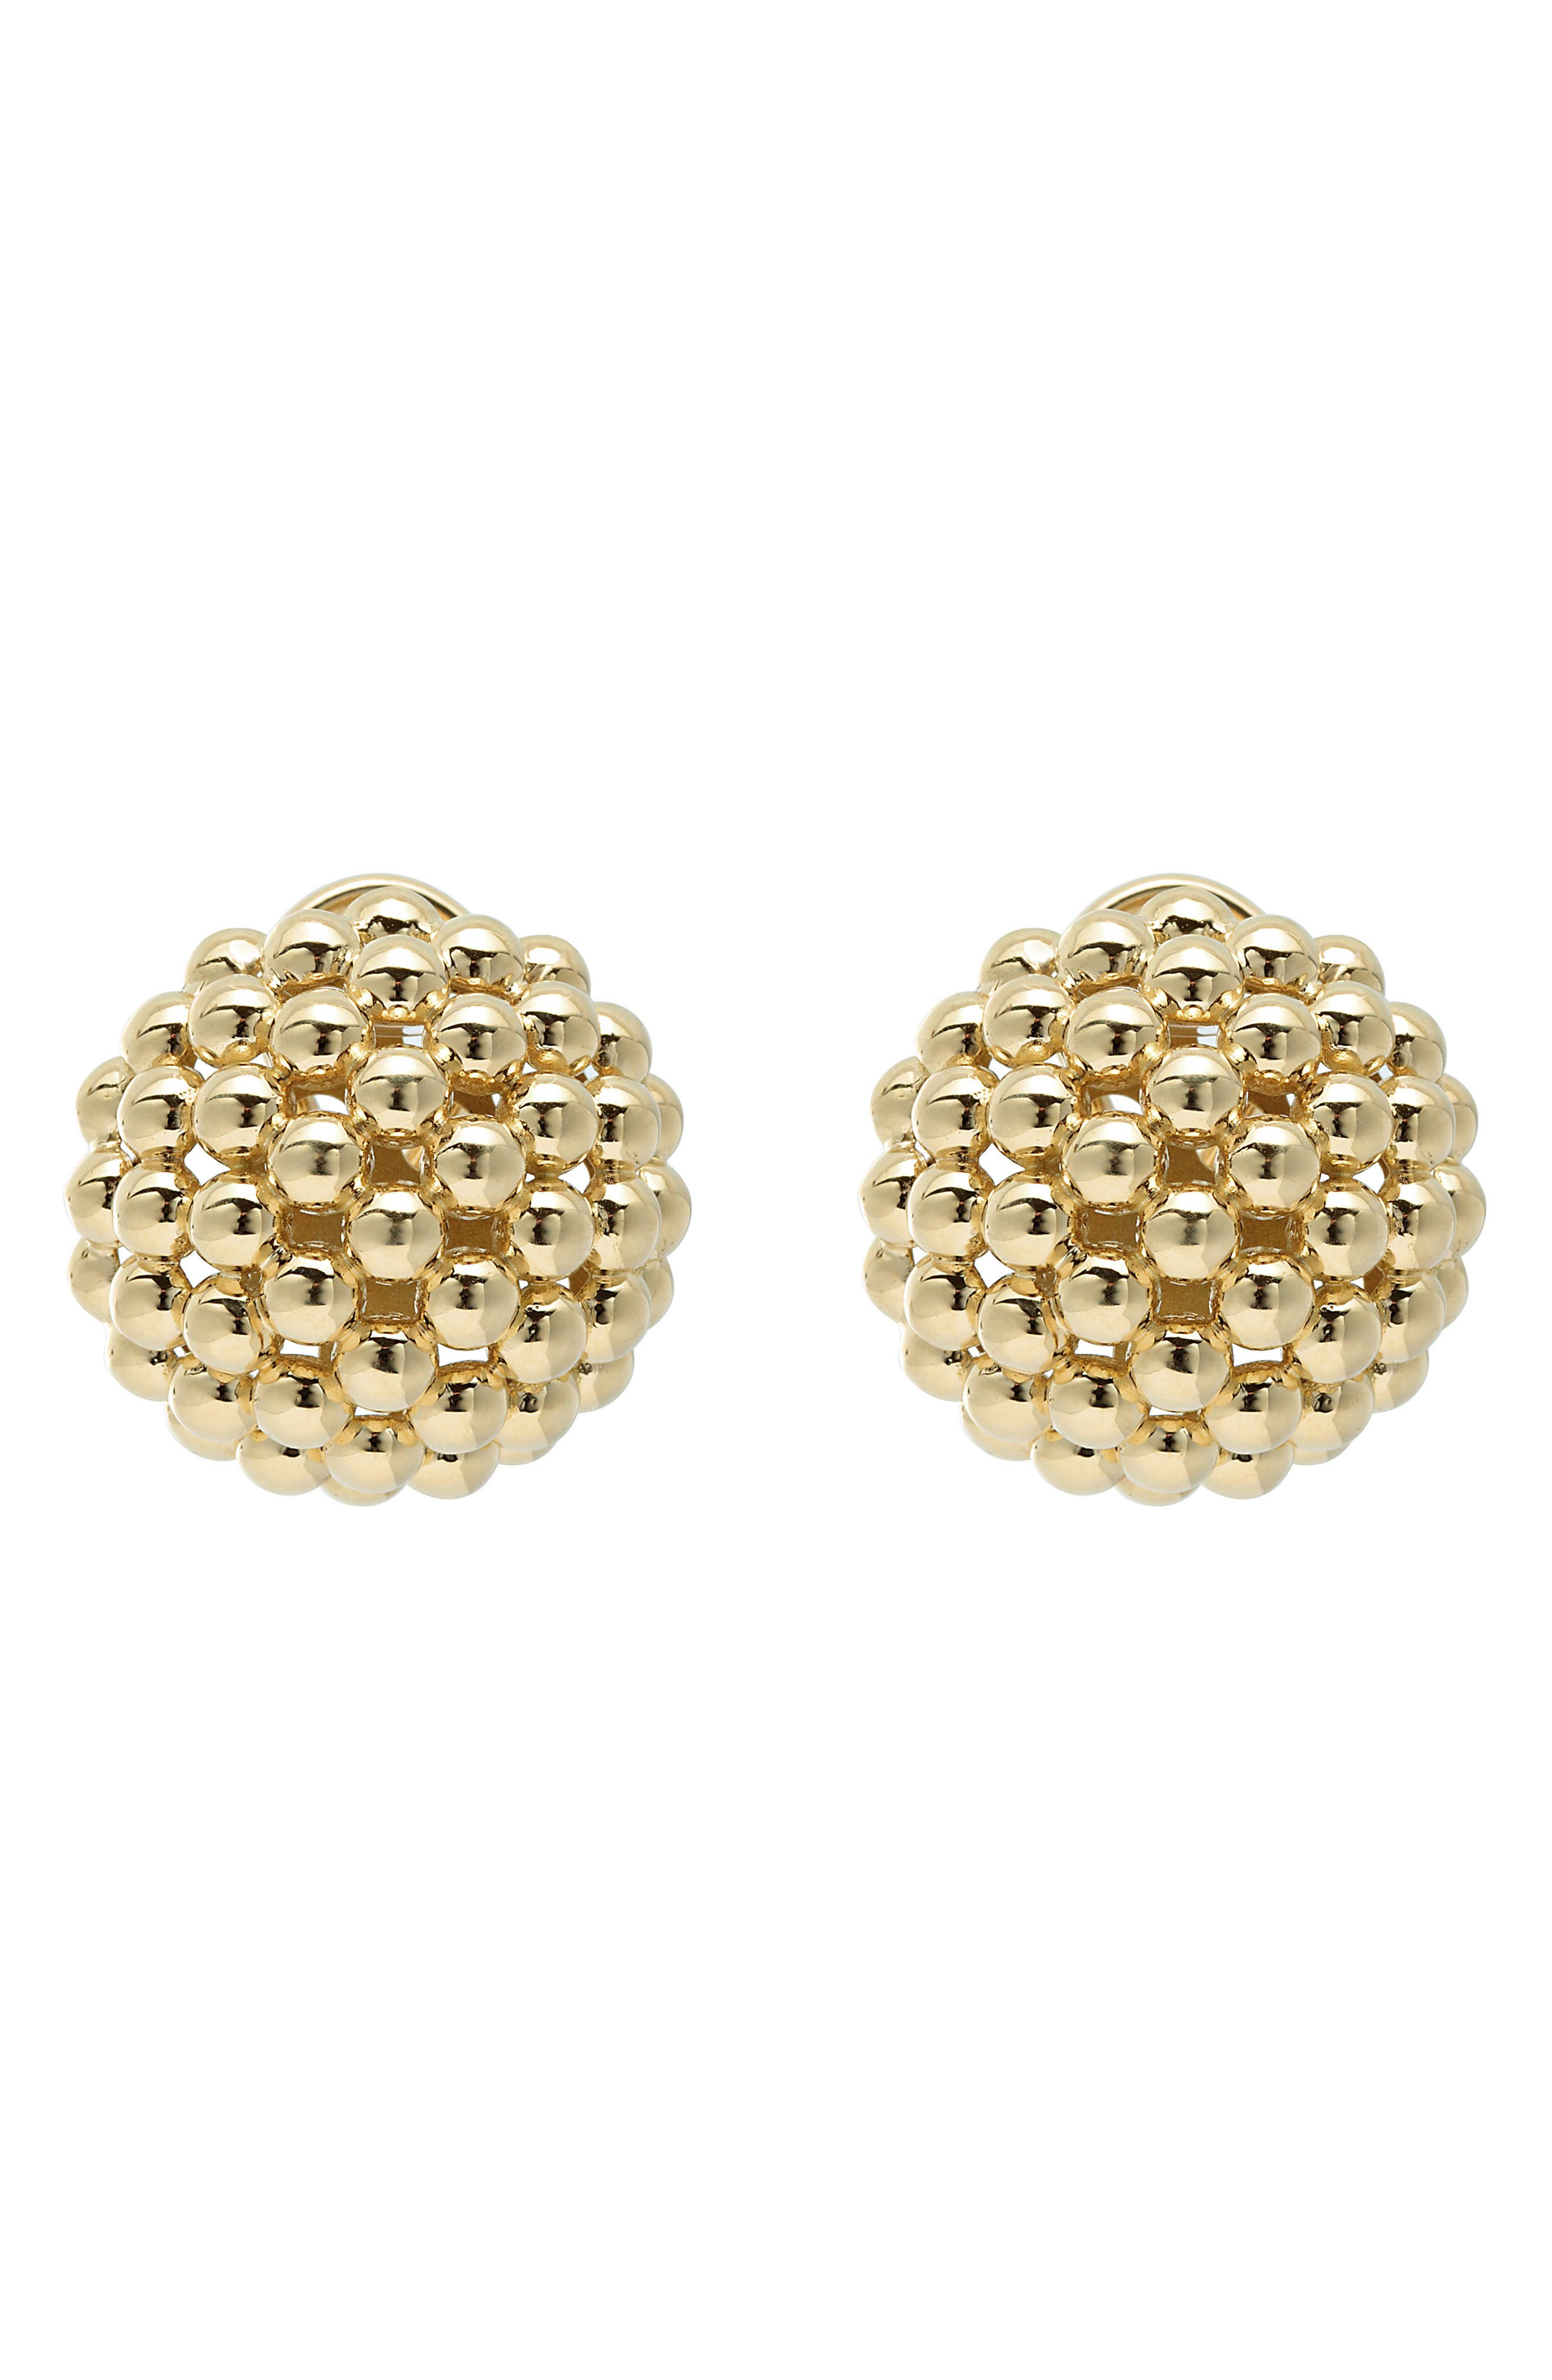 Caviar Gold Dome Omega Earrings,                             Alternate thumbnail 3, color,                             GOLD